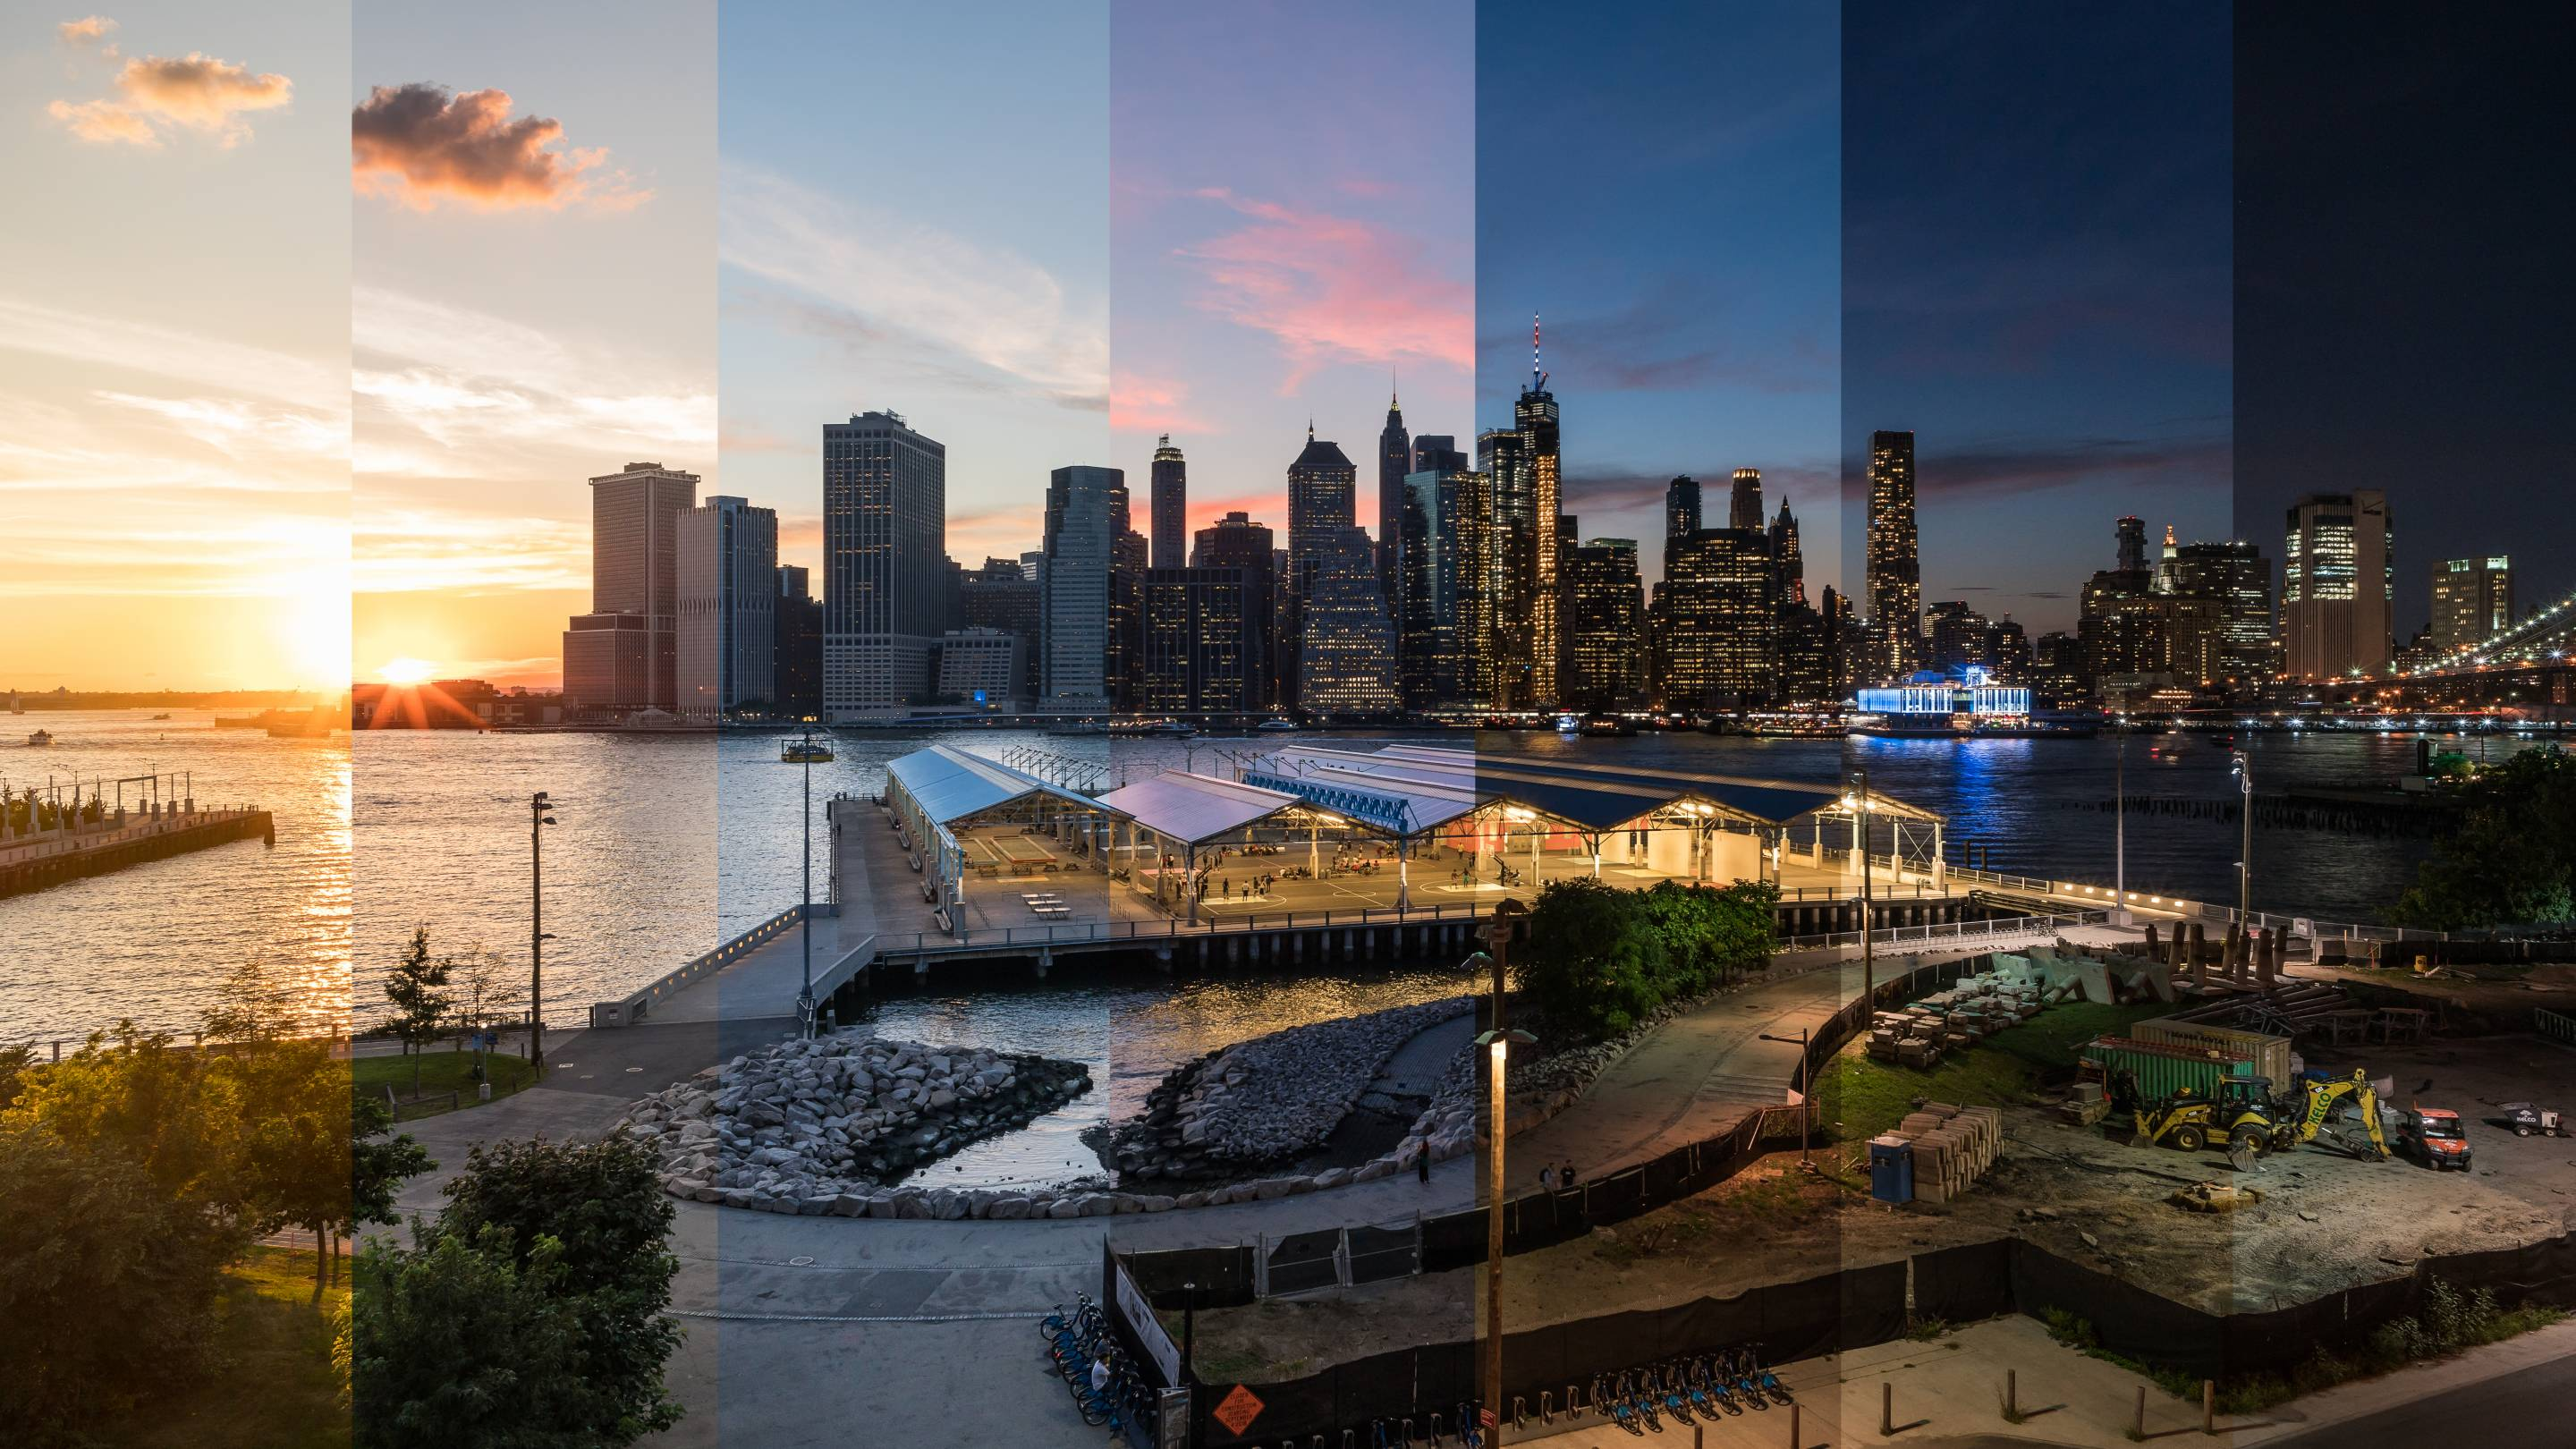 Composite Day to Night View of Lower Manhattan - New York